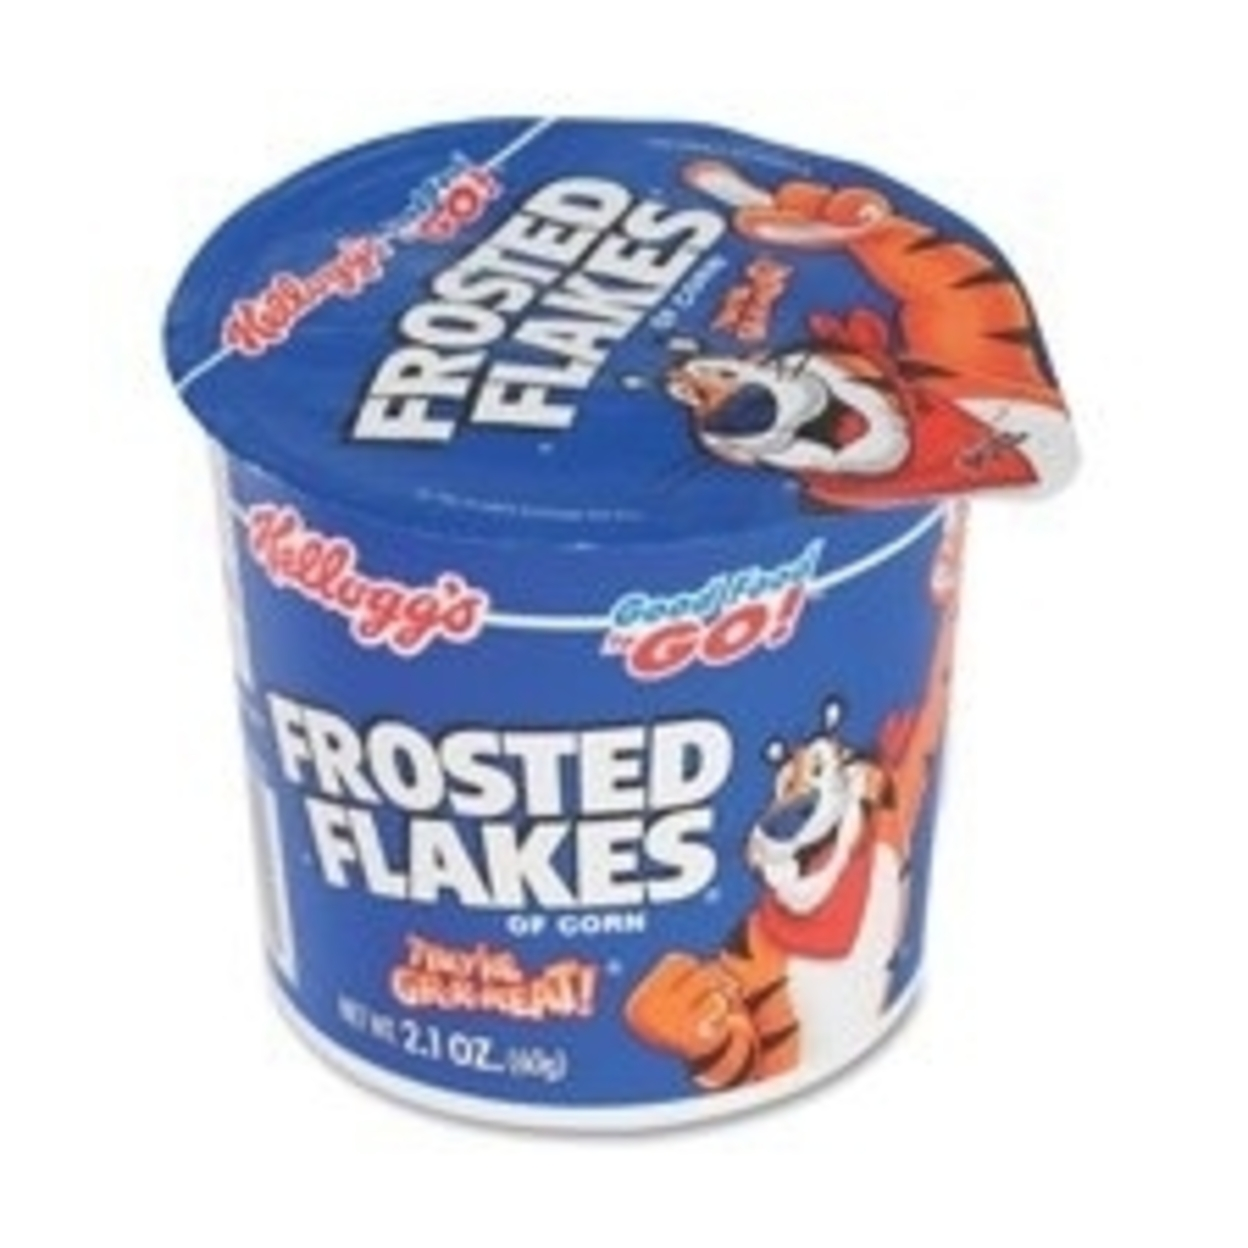 Keebler Co. Keb01468 Cereal-in-a-Cup, Super Size, 2.1 oz., 6-Pk, Frosted Flakes 5a3c4ac4e224617b9878a6cc